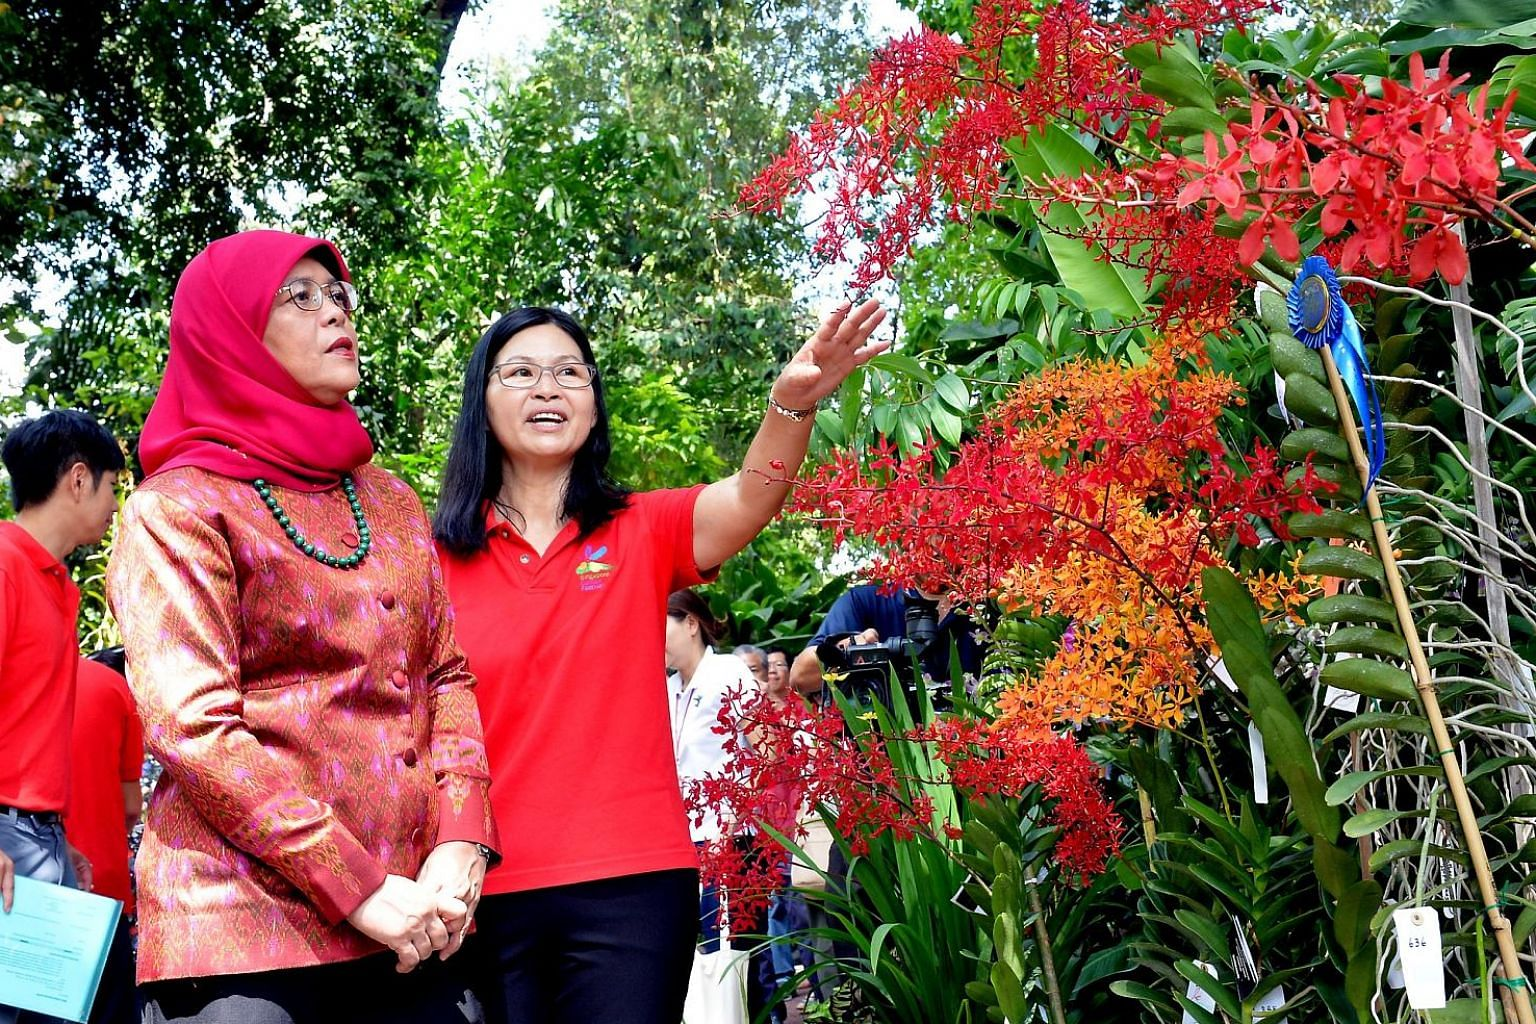 President Halimah Yacob with National Orchid Garden deputy director Whang Lay Keng at the opening of the inaugural Singapore Garden Festival Orchid Show.